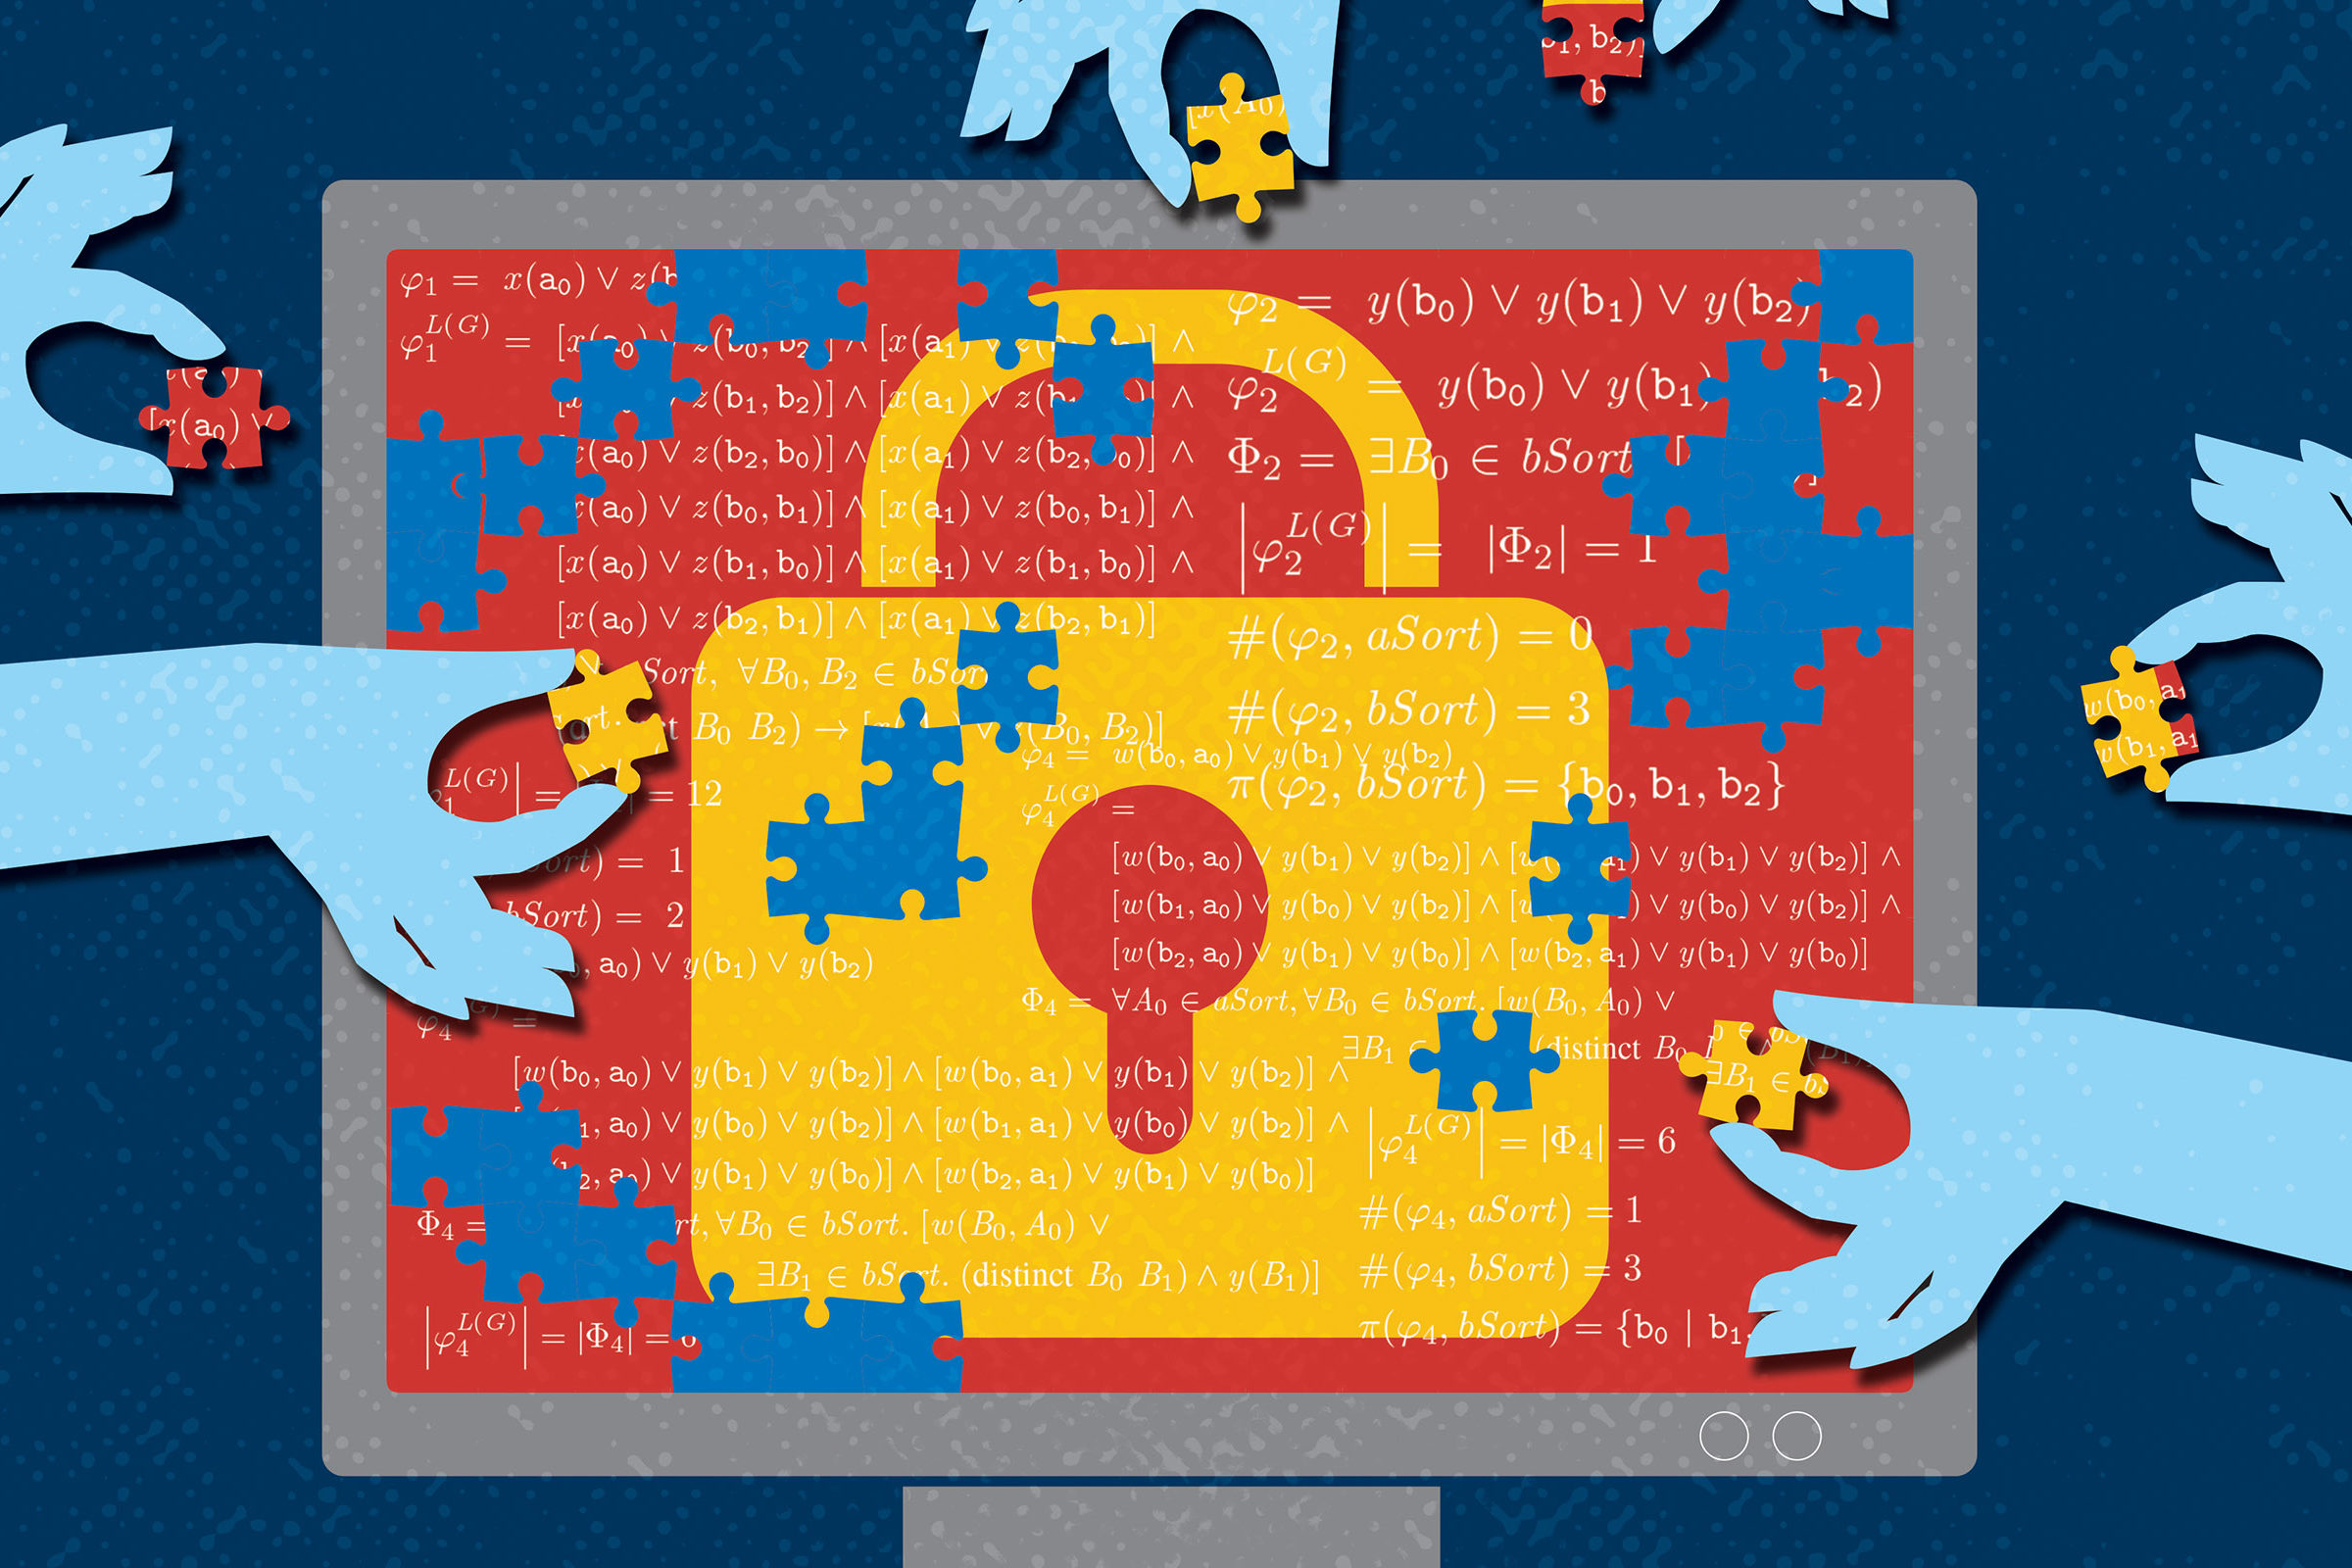 A puzzle of a lock and math equations comes together on-screen